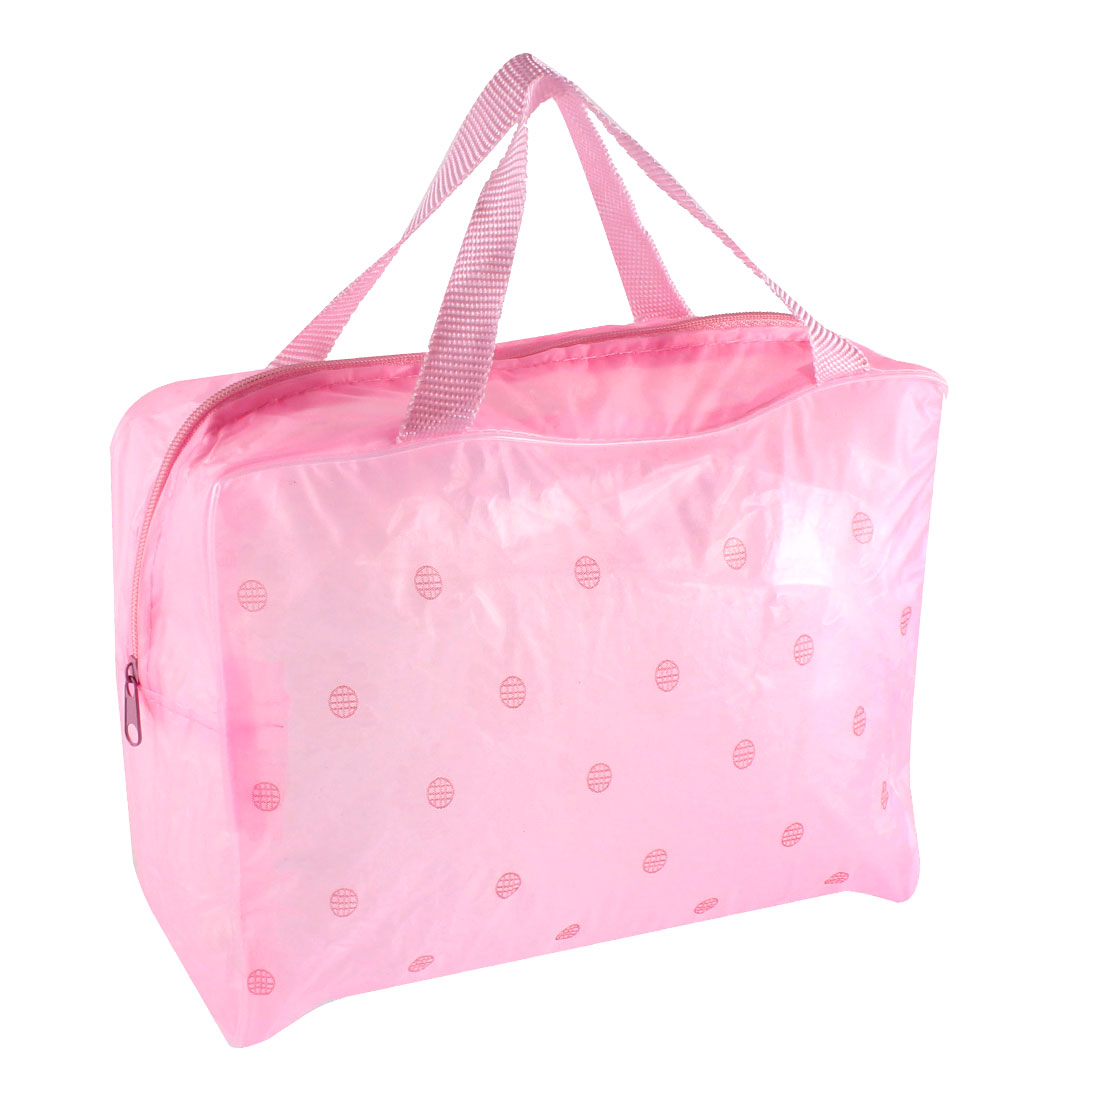 Travel Zipper Closure Floral Pattern Transparent Waterproof Makeup Bag Cosmetic Case Toiletry Storage Bathing Pouch Pink